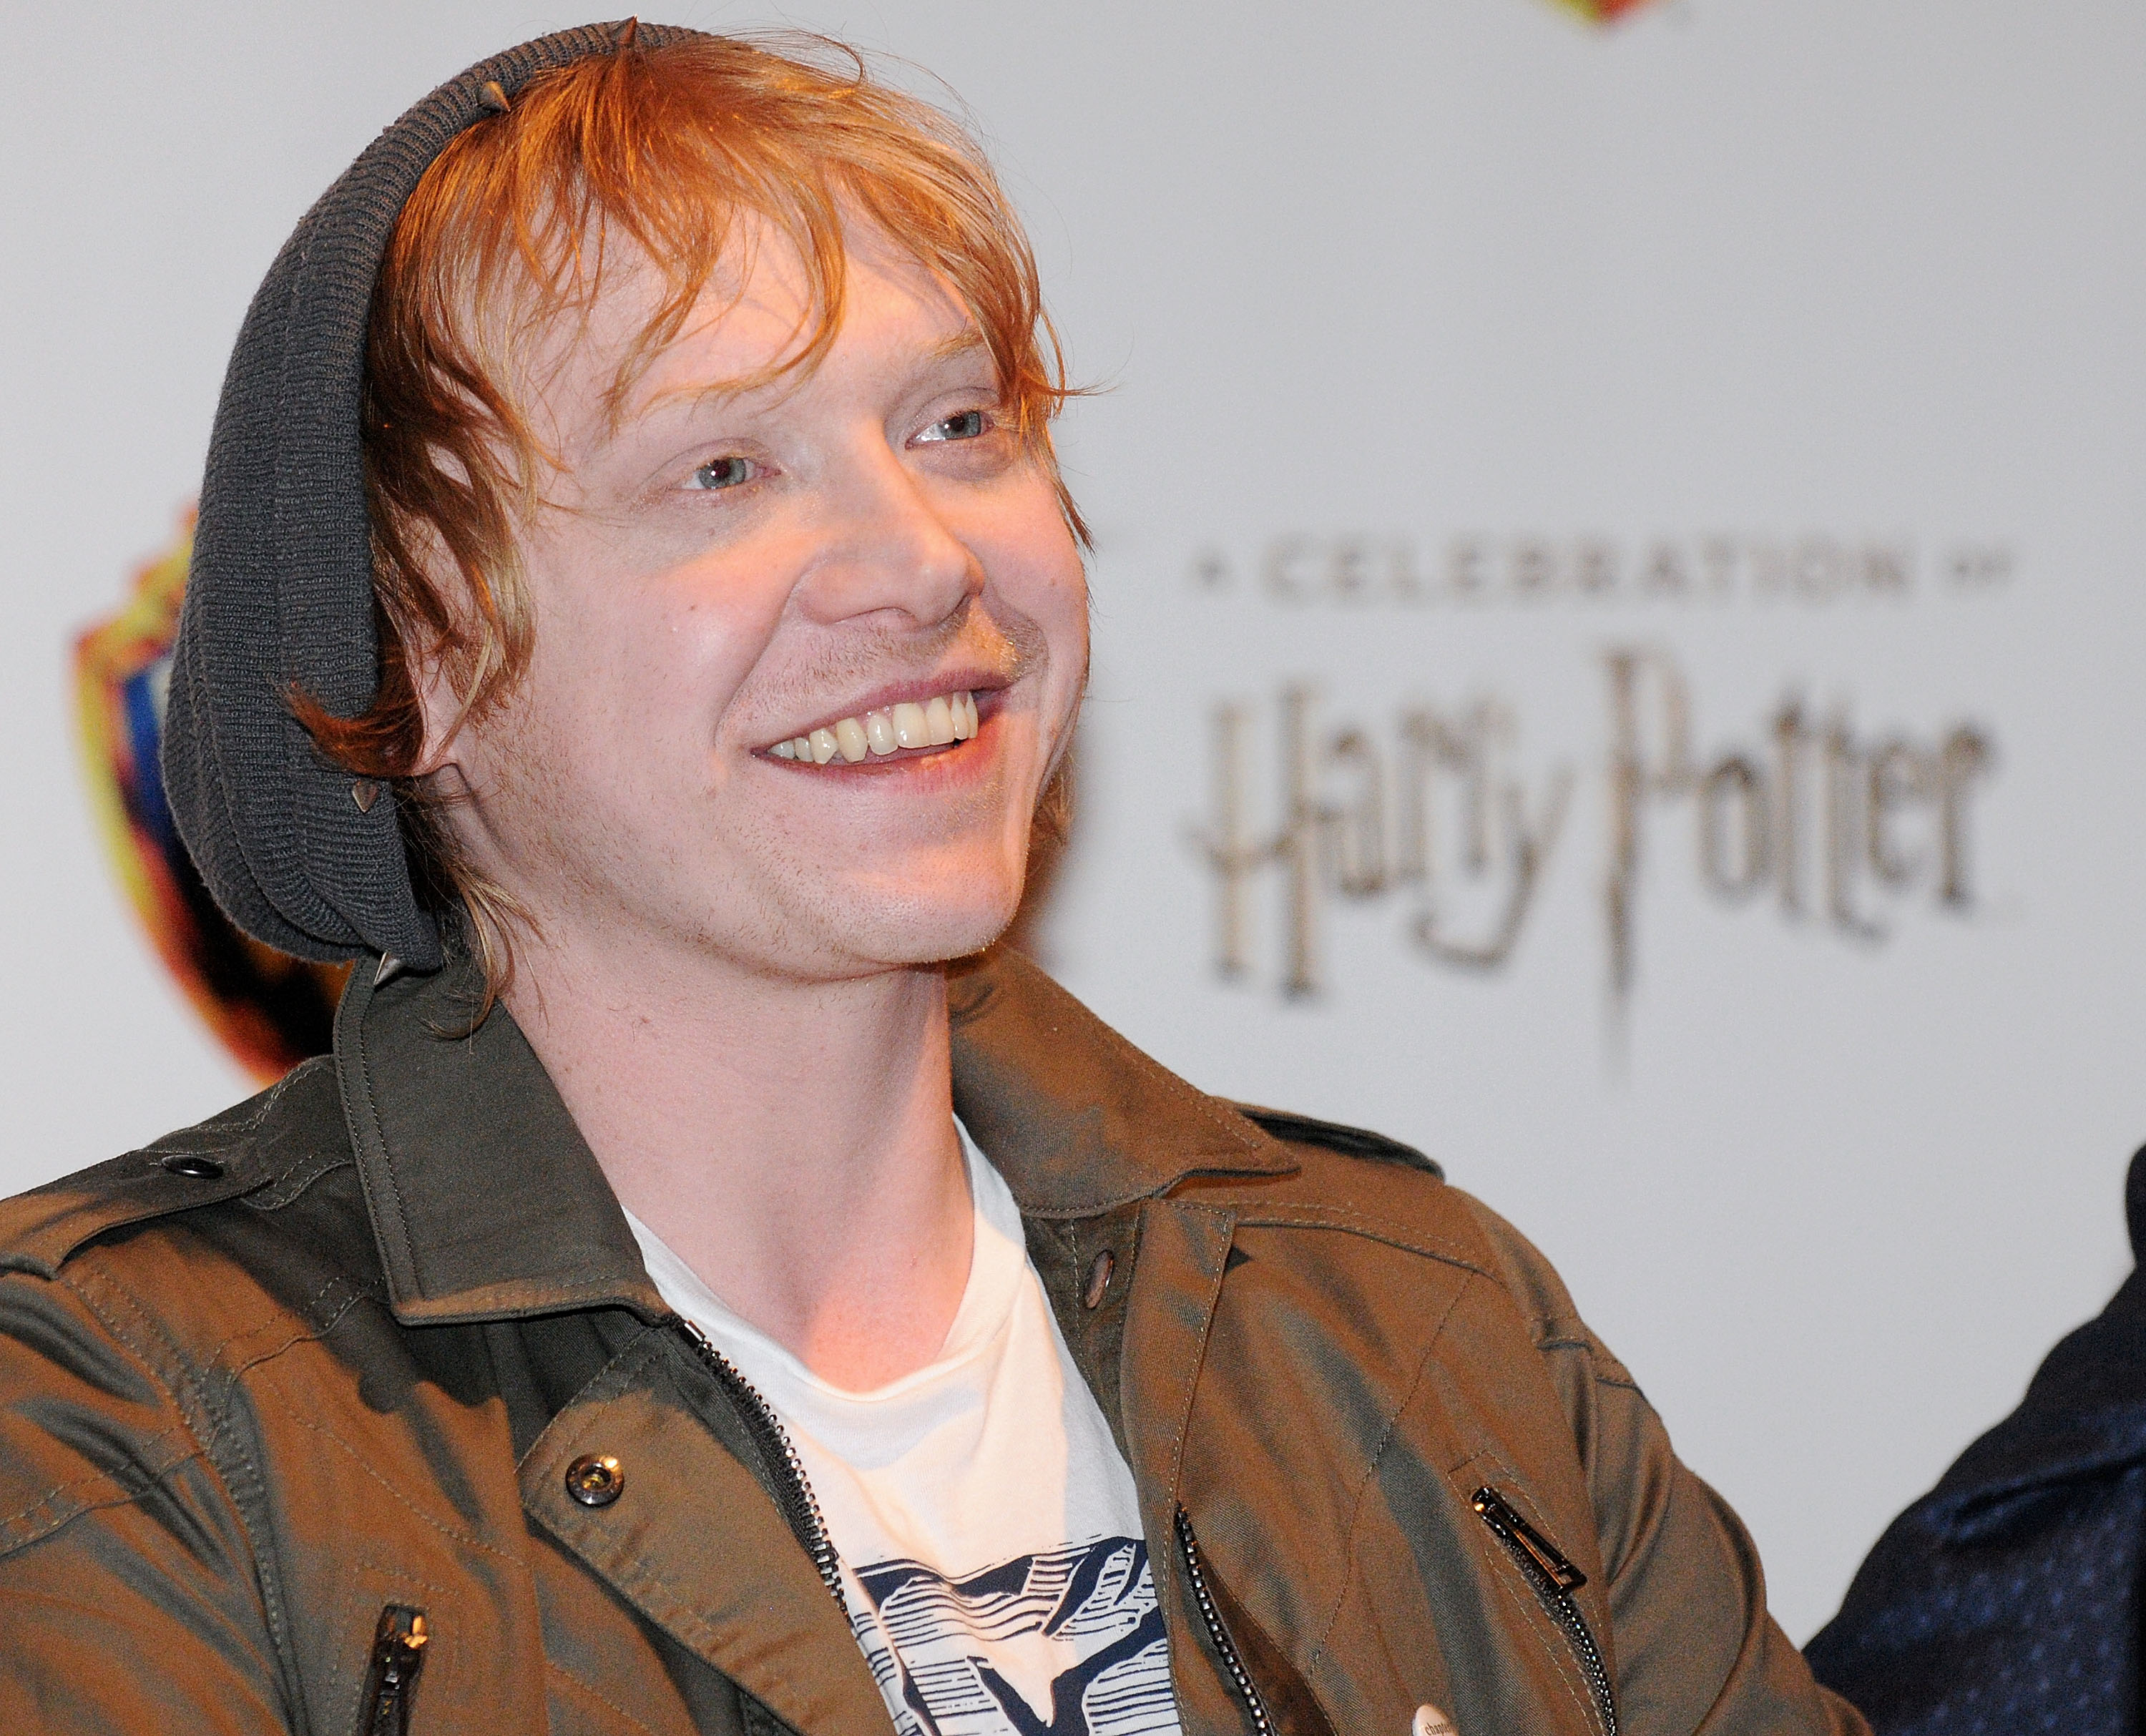 Where Is Rupert Grint Now? 'Harry Potter' Alum Stars In ... руперт гринт 2017